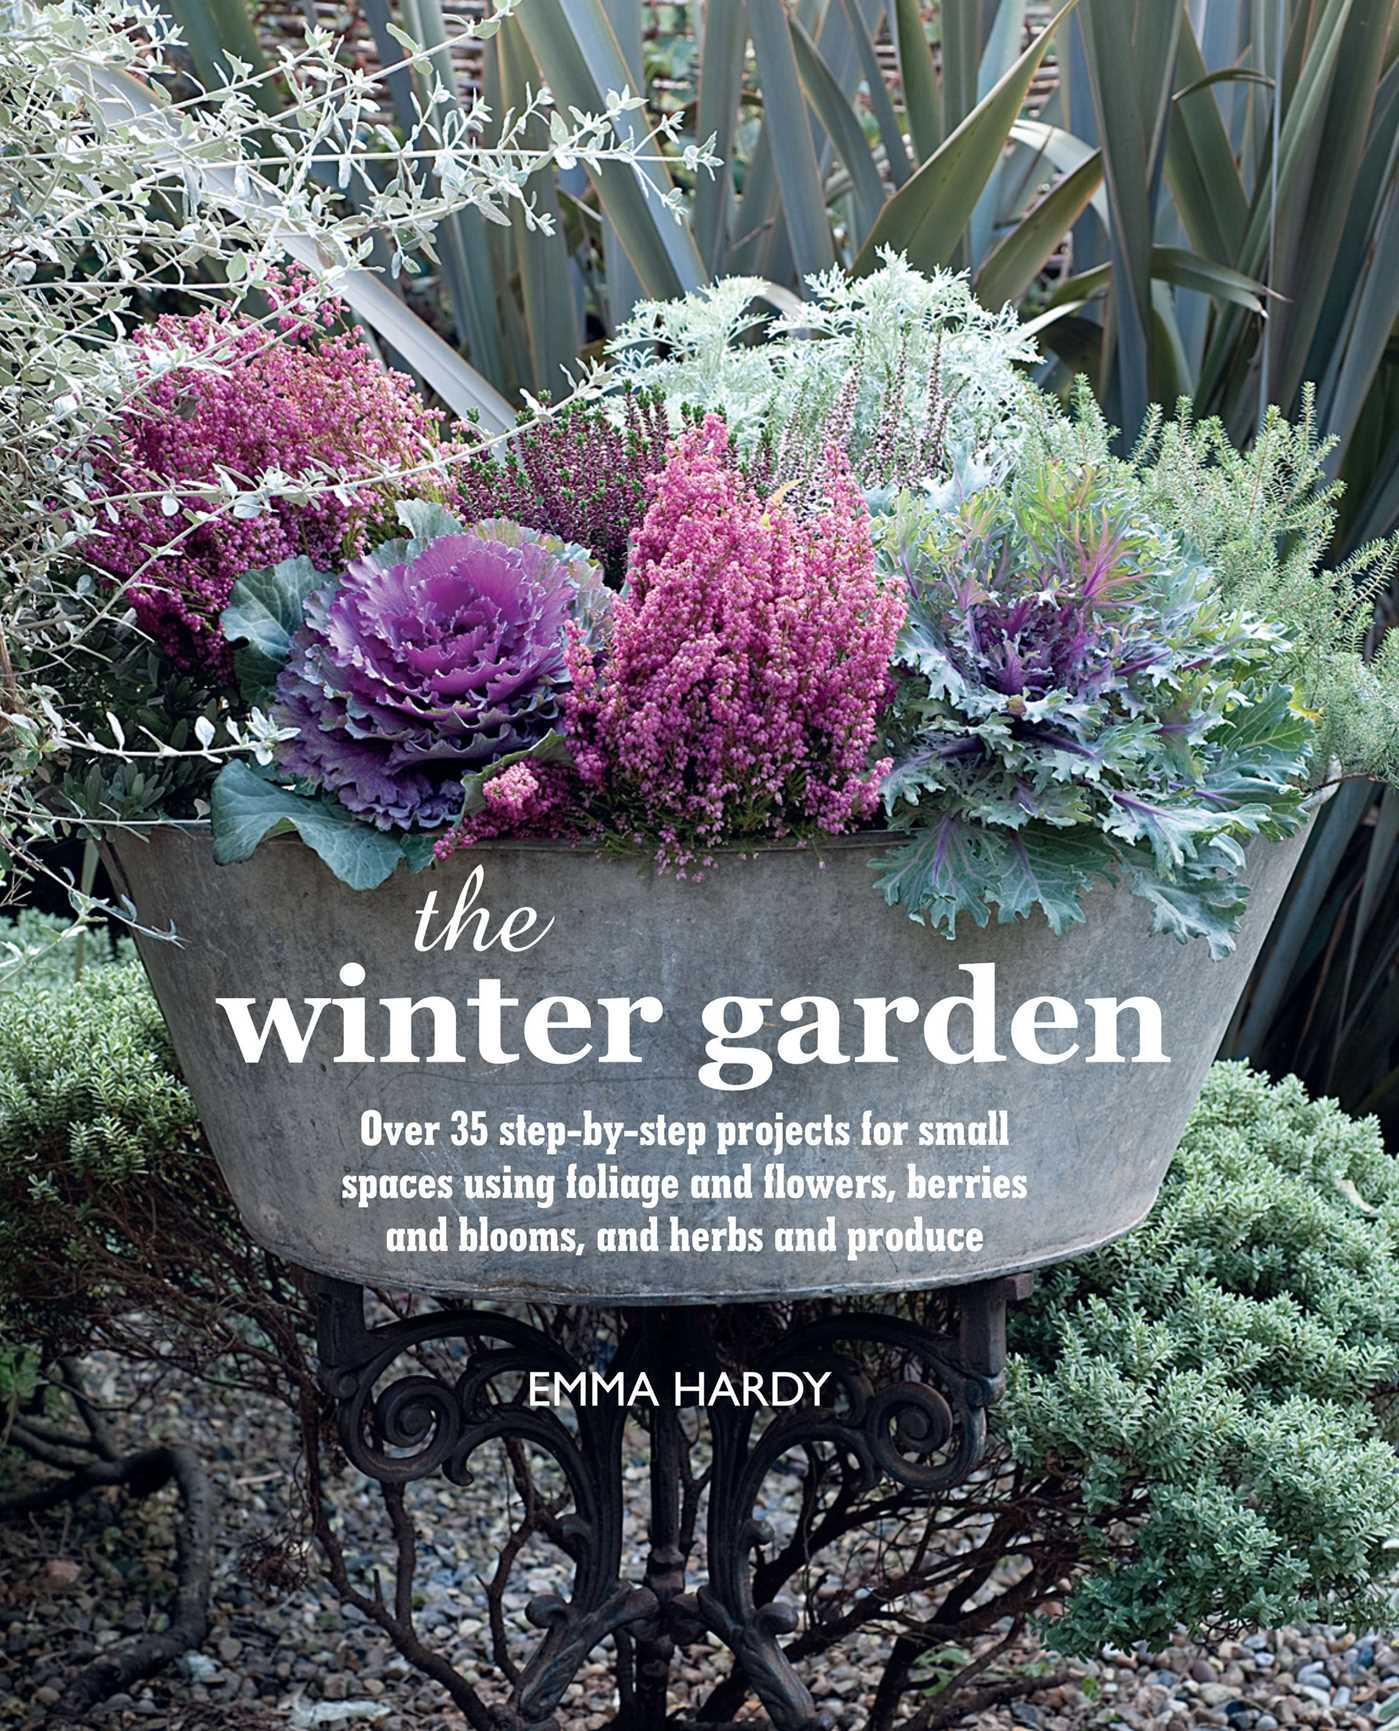 The winter garden book by emma hardy official publisher page simon schuster for Barnes and noble winter garden